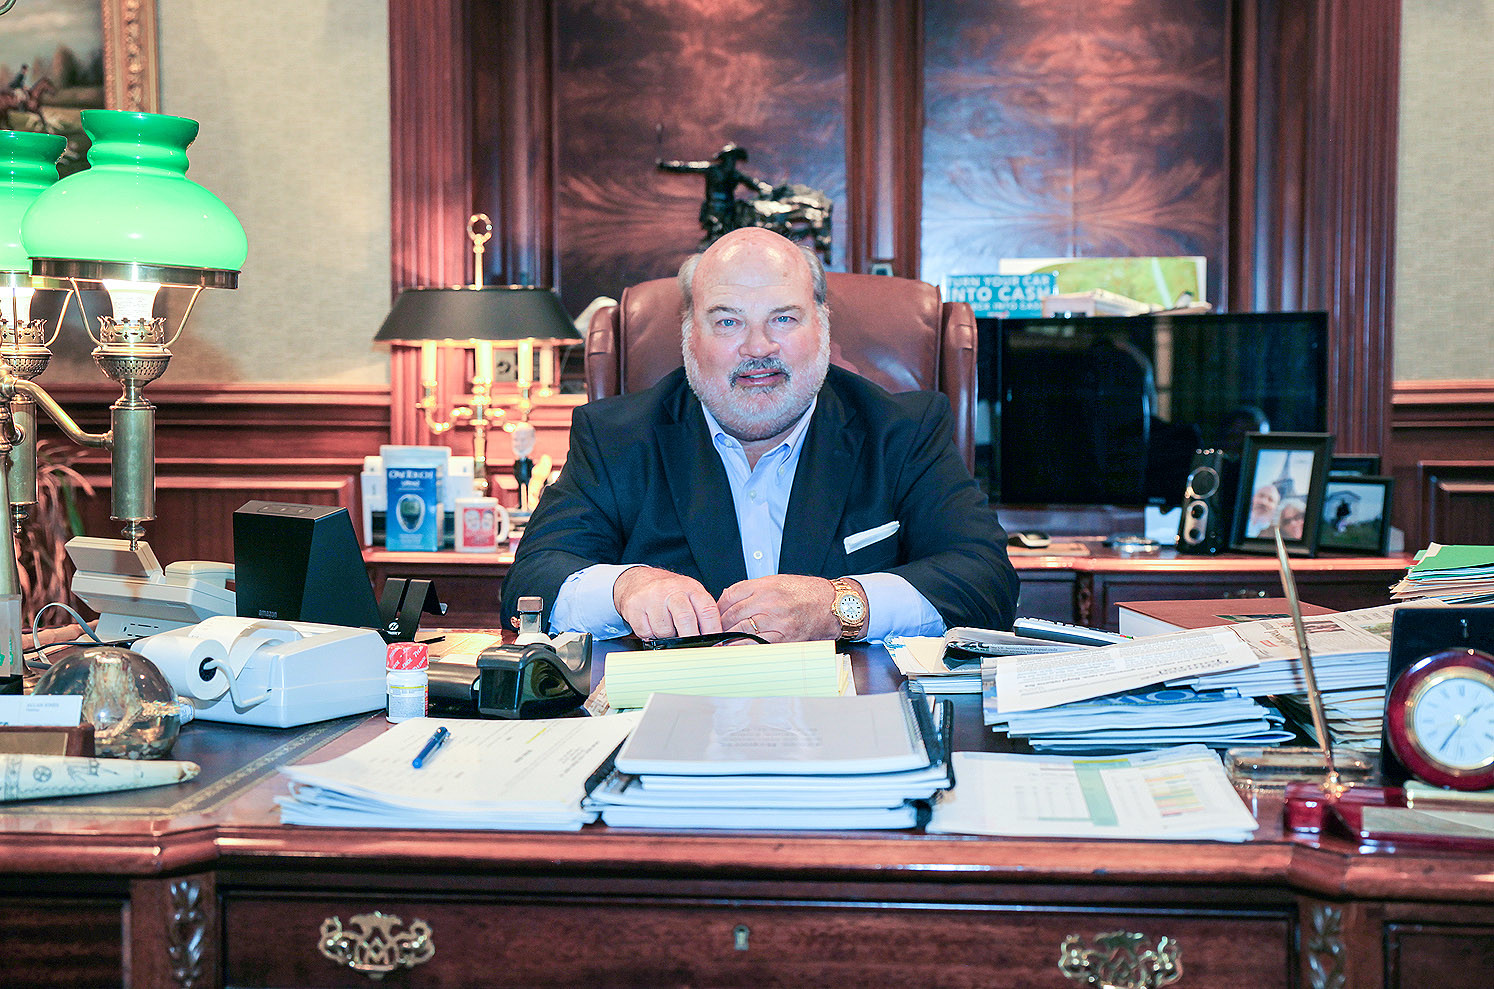 ALLAN JONES, a civic leader and philanthropist, as well as a high-profile Cleveland businessman speaks on the 25-year history of Check Into Cash from his very busy desk.